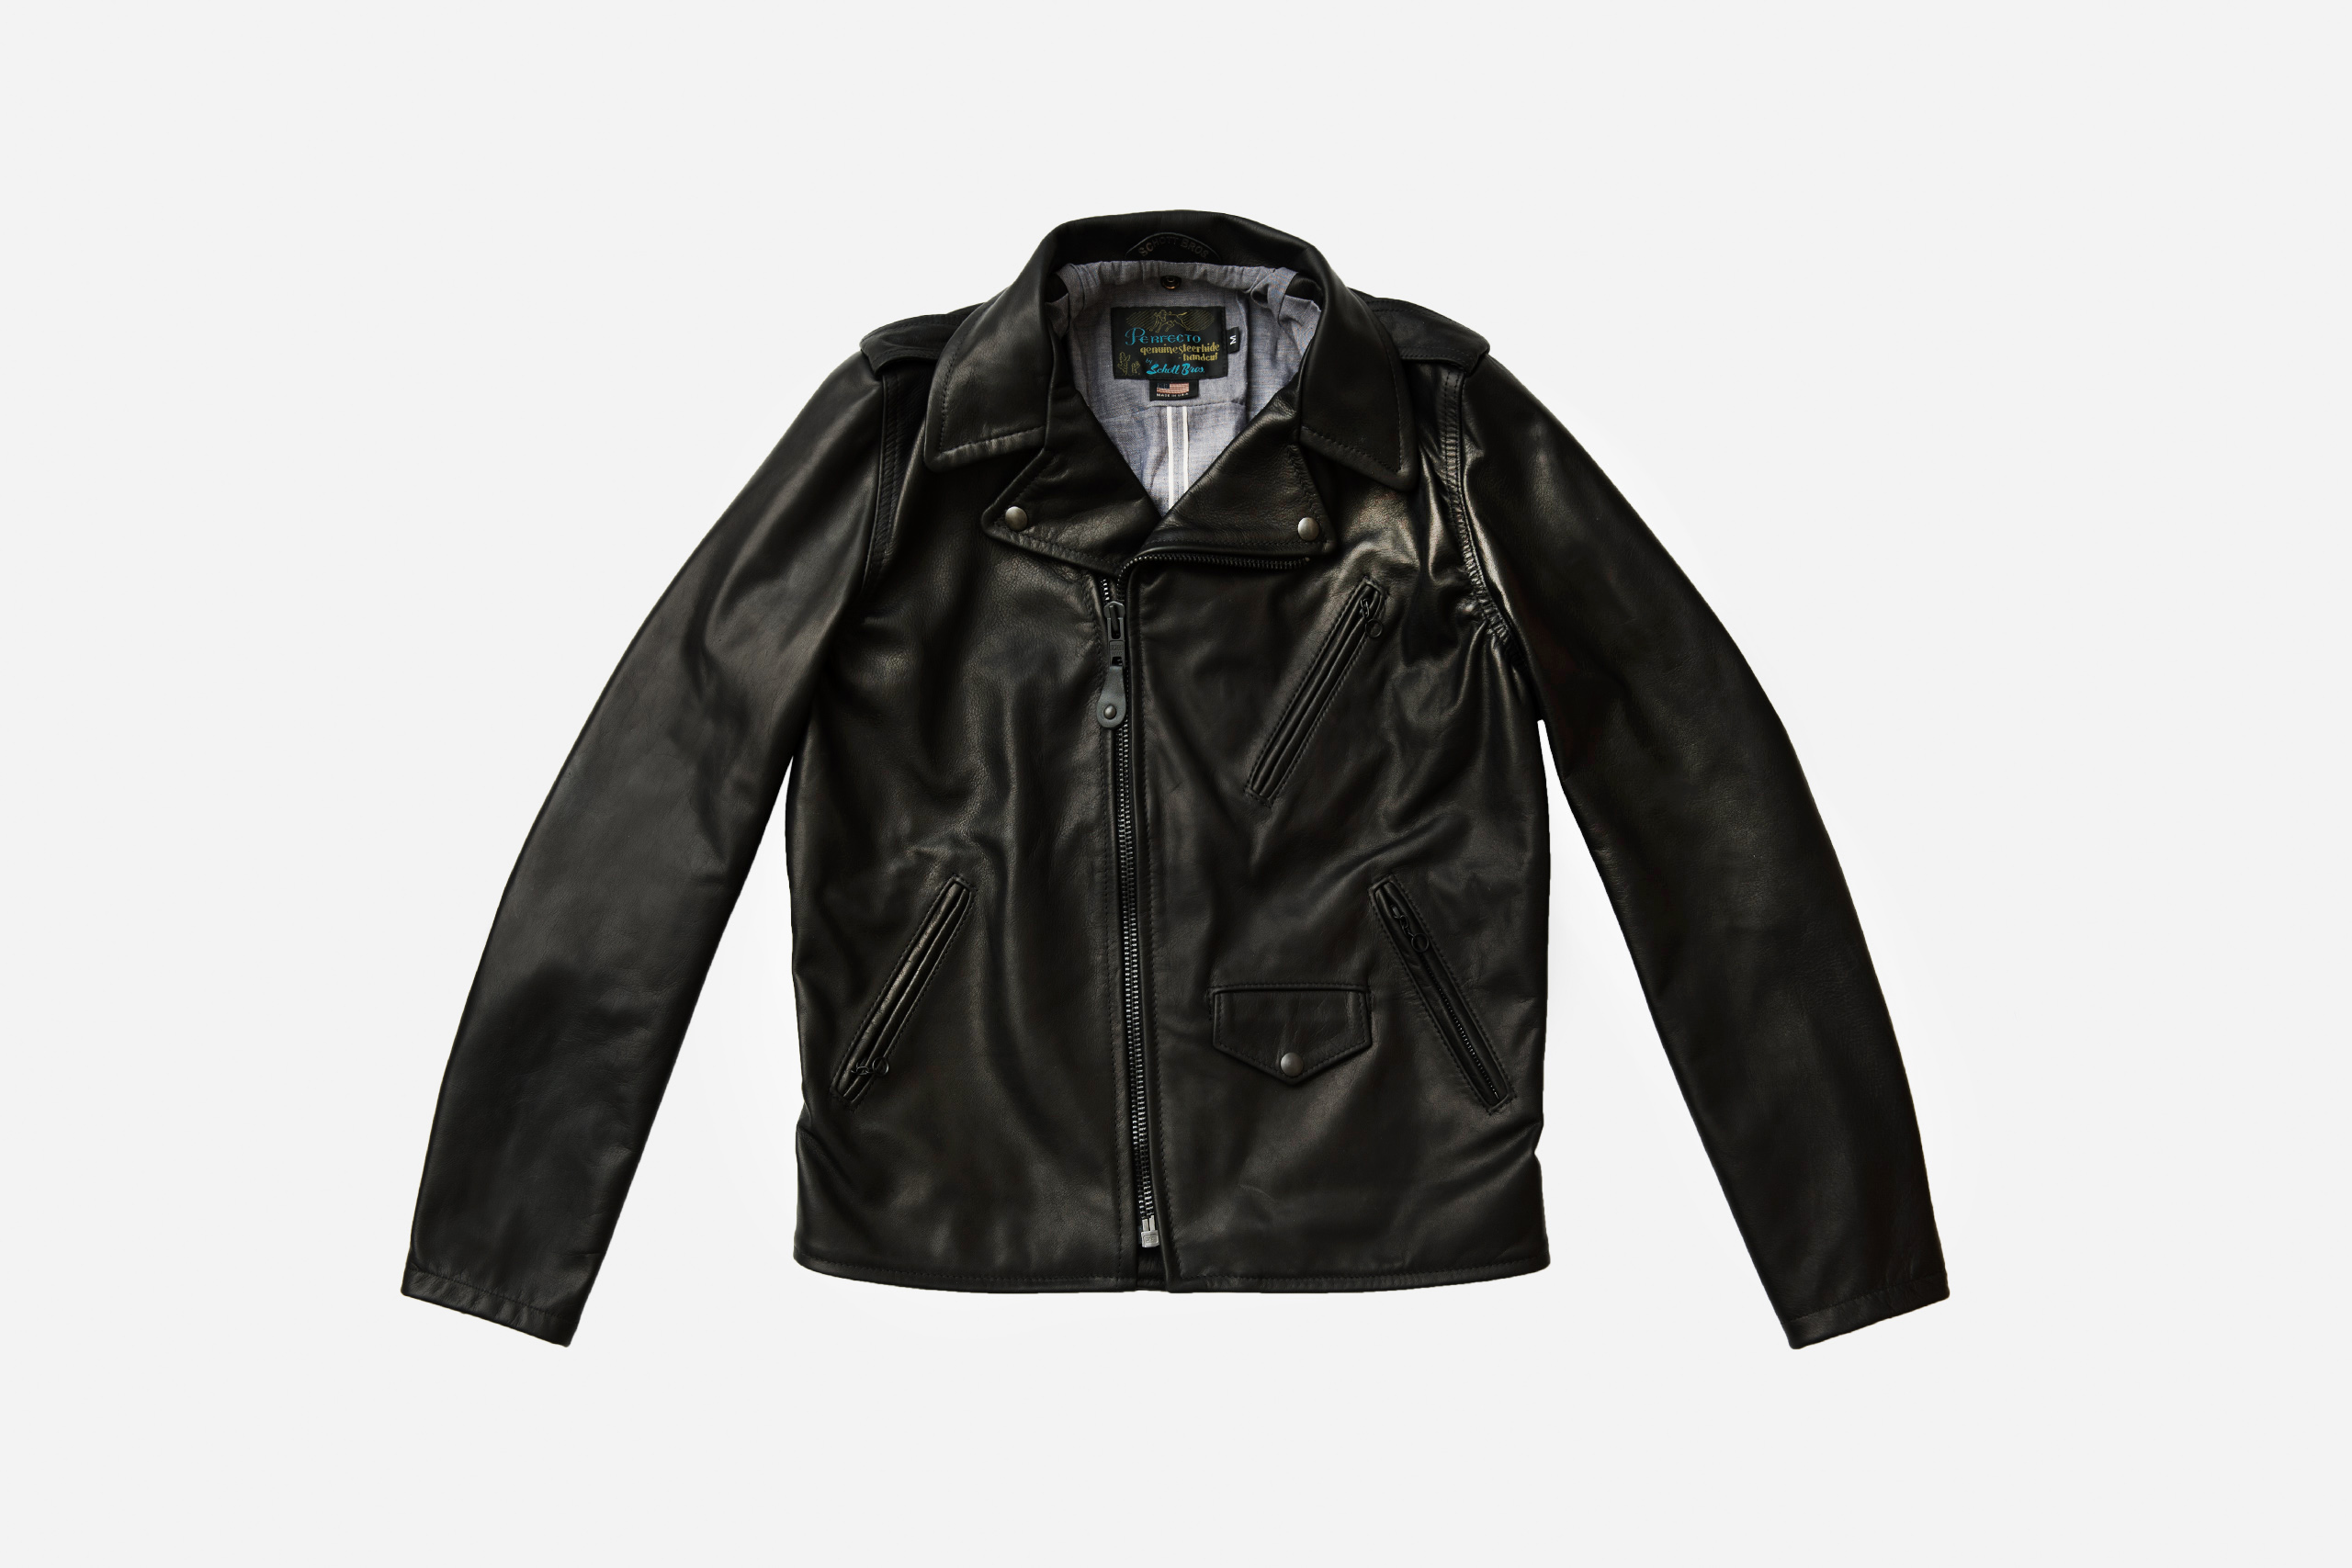 espen's photos in Leather Jackets:  Post Pictures of the Best You've Seen/Owned?